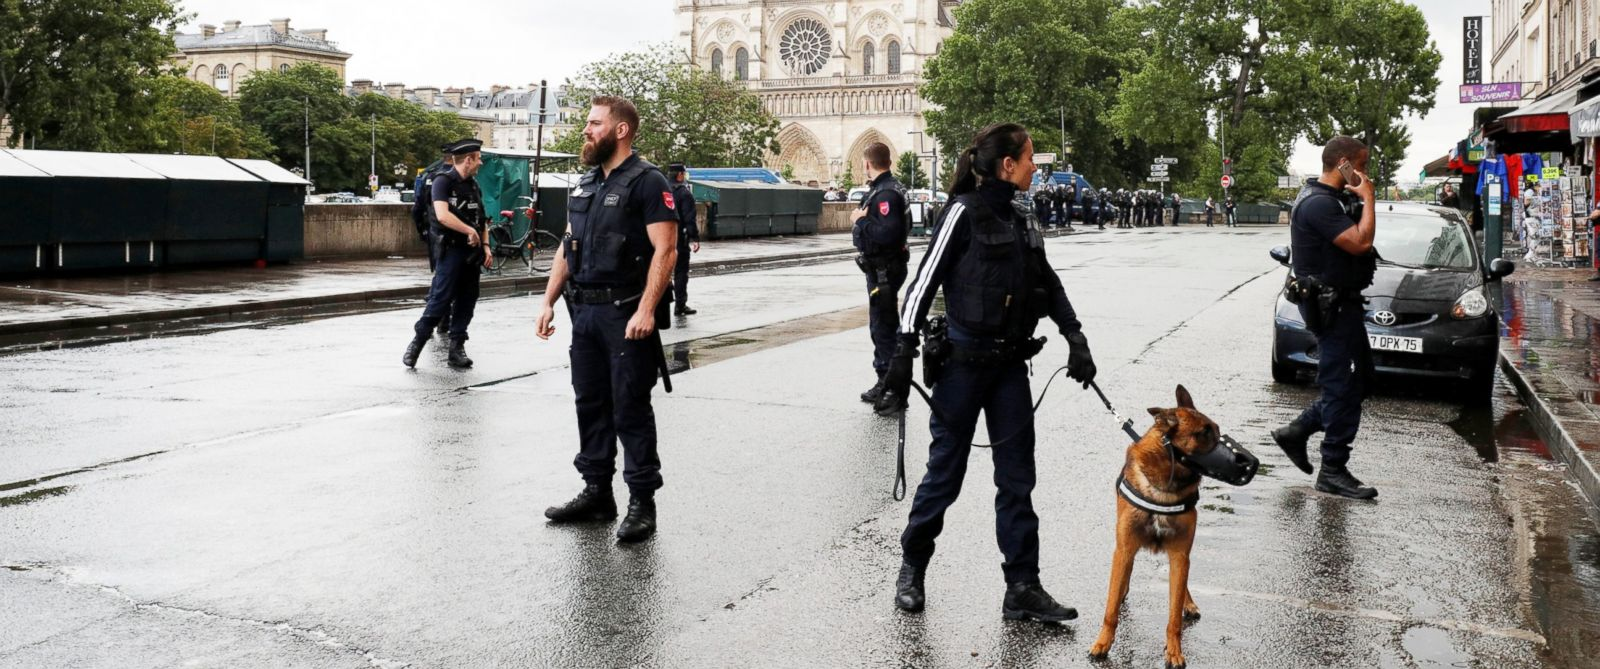 PHOTO: Police stand at the scene of a shooting incident near the Notre Dame Cathedral in Paris, June 6, 2017.